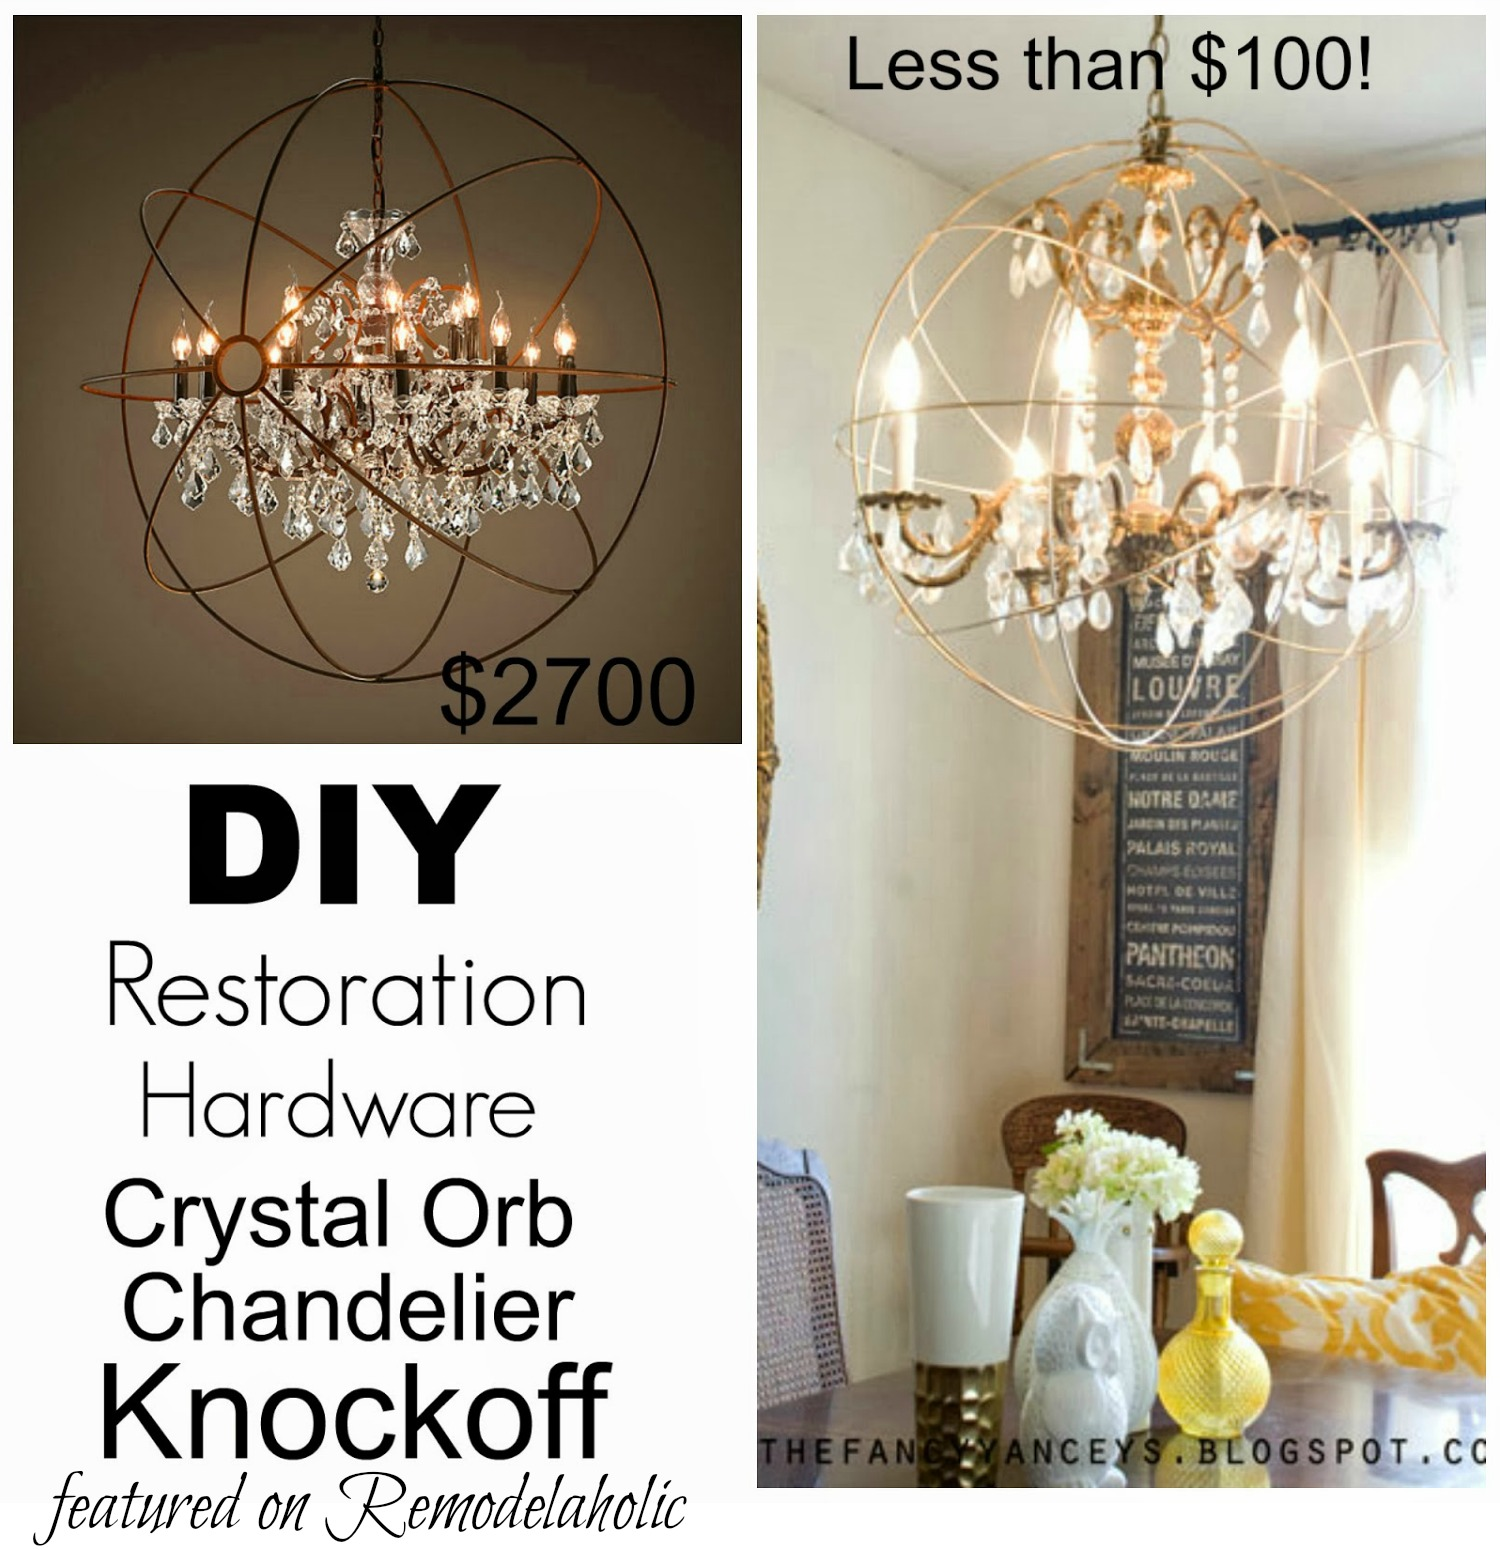 Diy Crystal Chandelier at Home and Interior Design Ideas